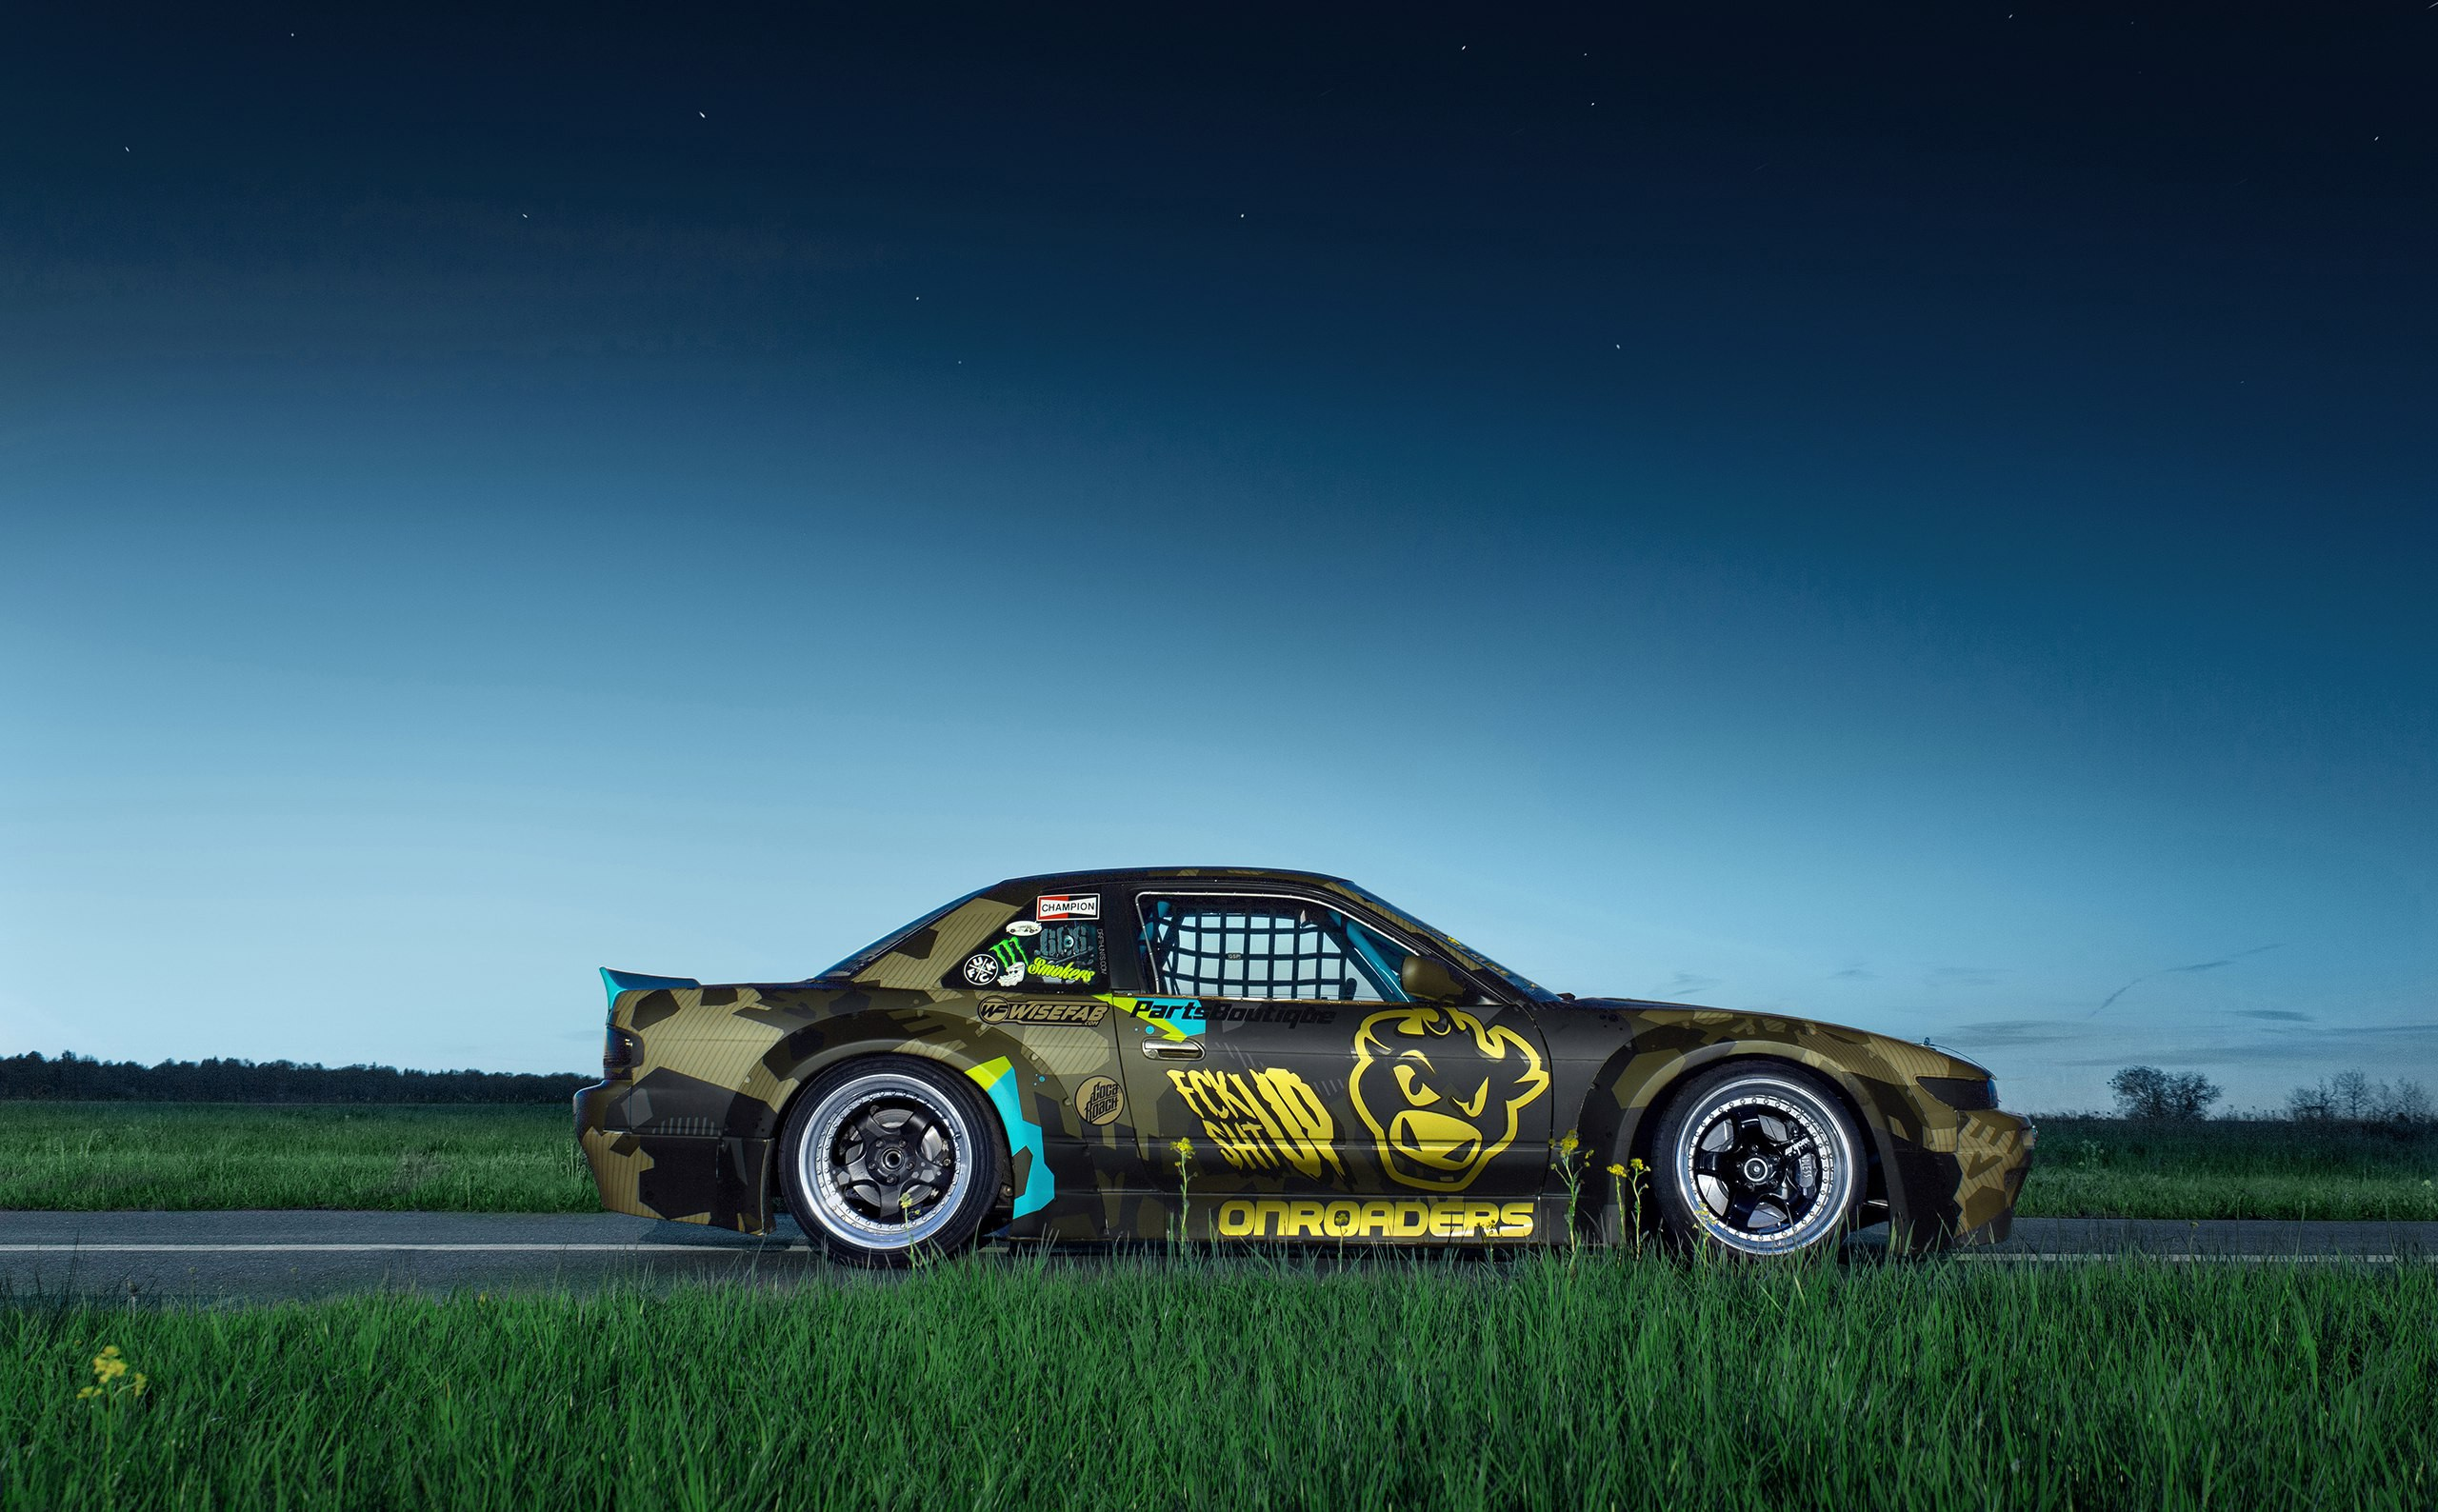 Nissan silvia s13 hd cars 4k wallpapers images - Nissan silvia s13 wallpaper ...